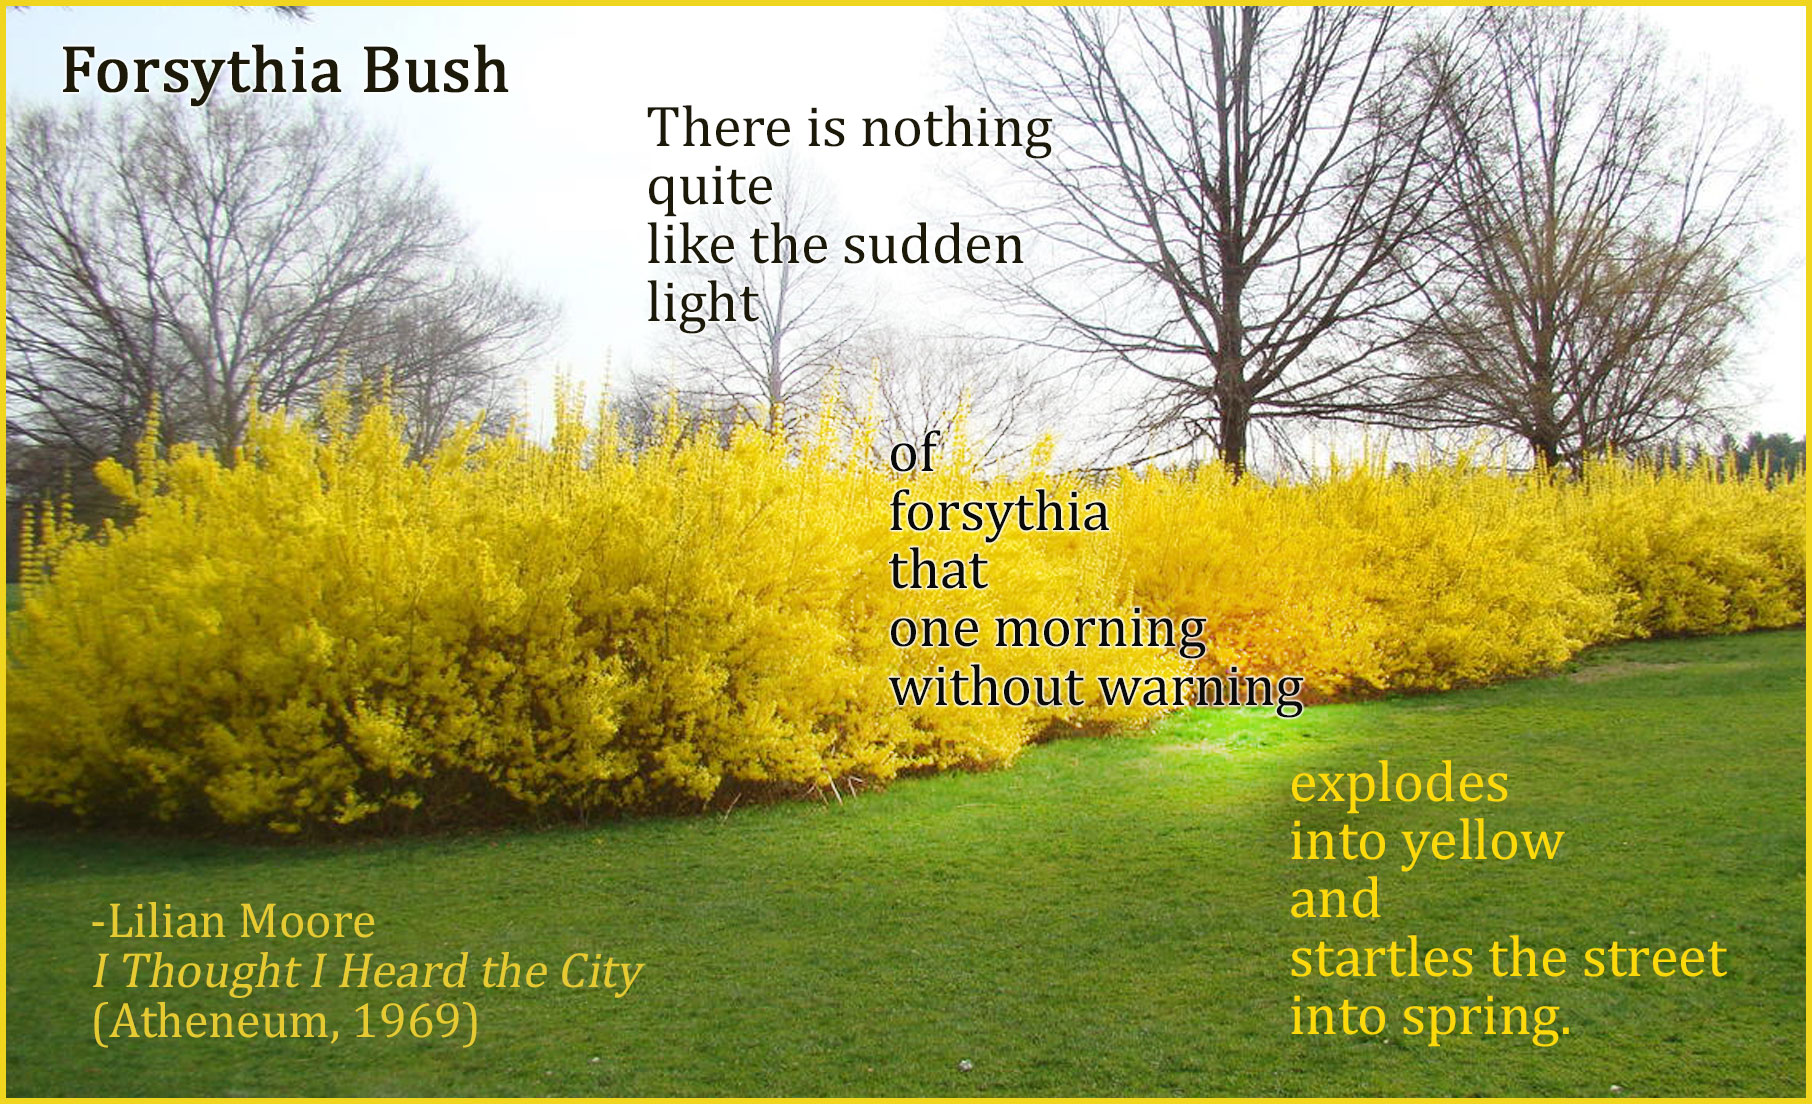 Forsythia-Bush-spread